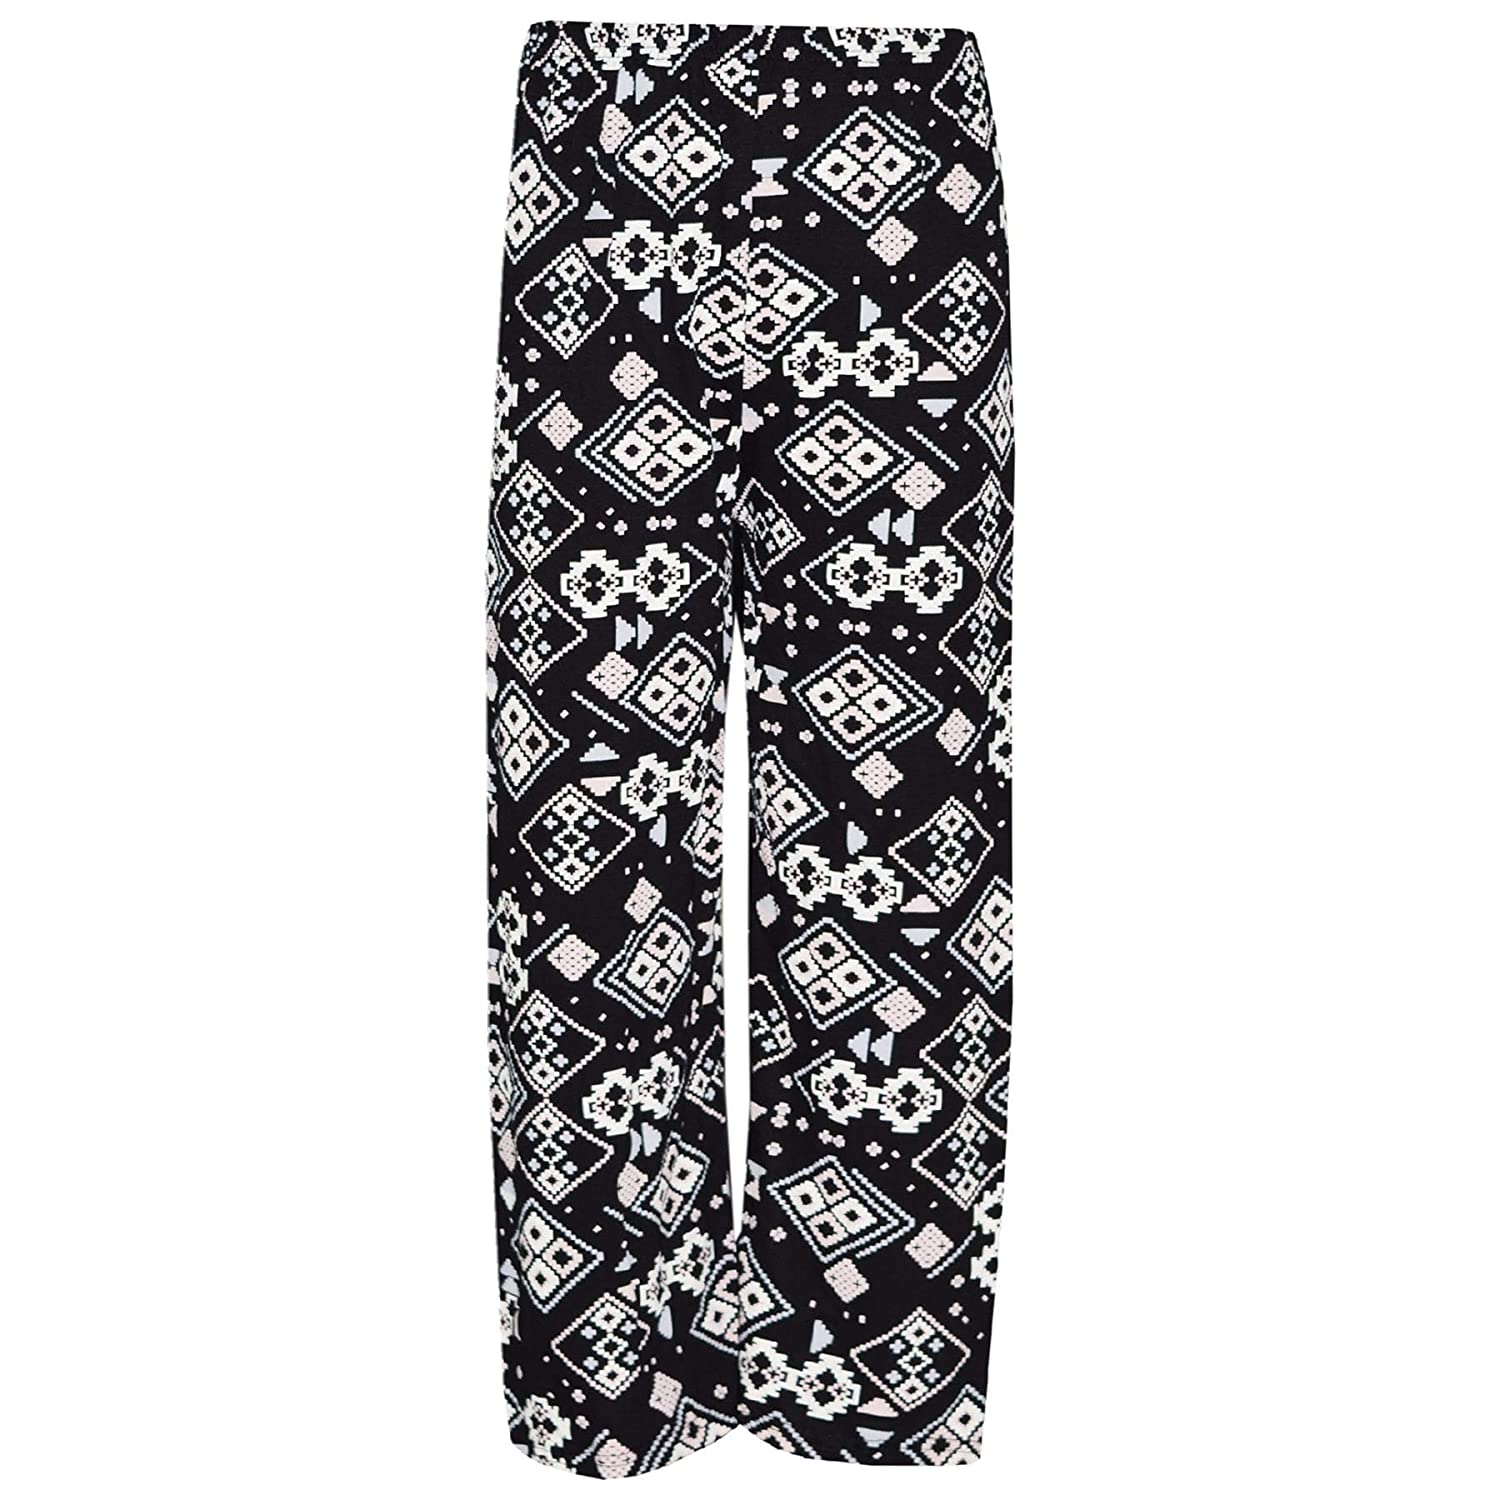 A2Z 4 Kids Kids Girls Palazzo Printed Flared Wide Leg High Waist Long Pants Summer Trendy Fashion Baggy Legging Loose Casual Trousers New Age 7 8 9 10 11 12 13 Years